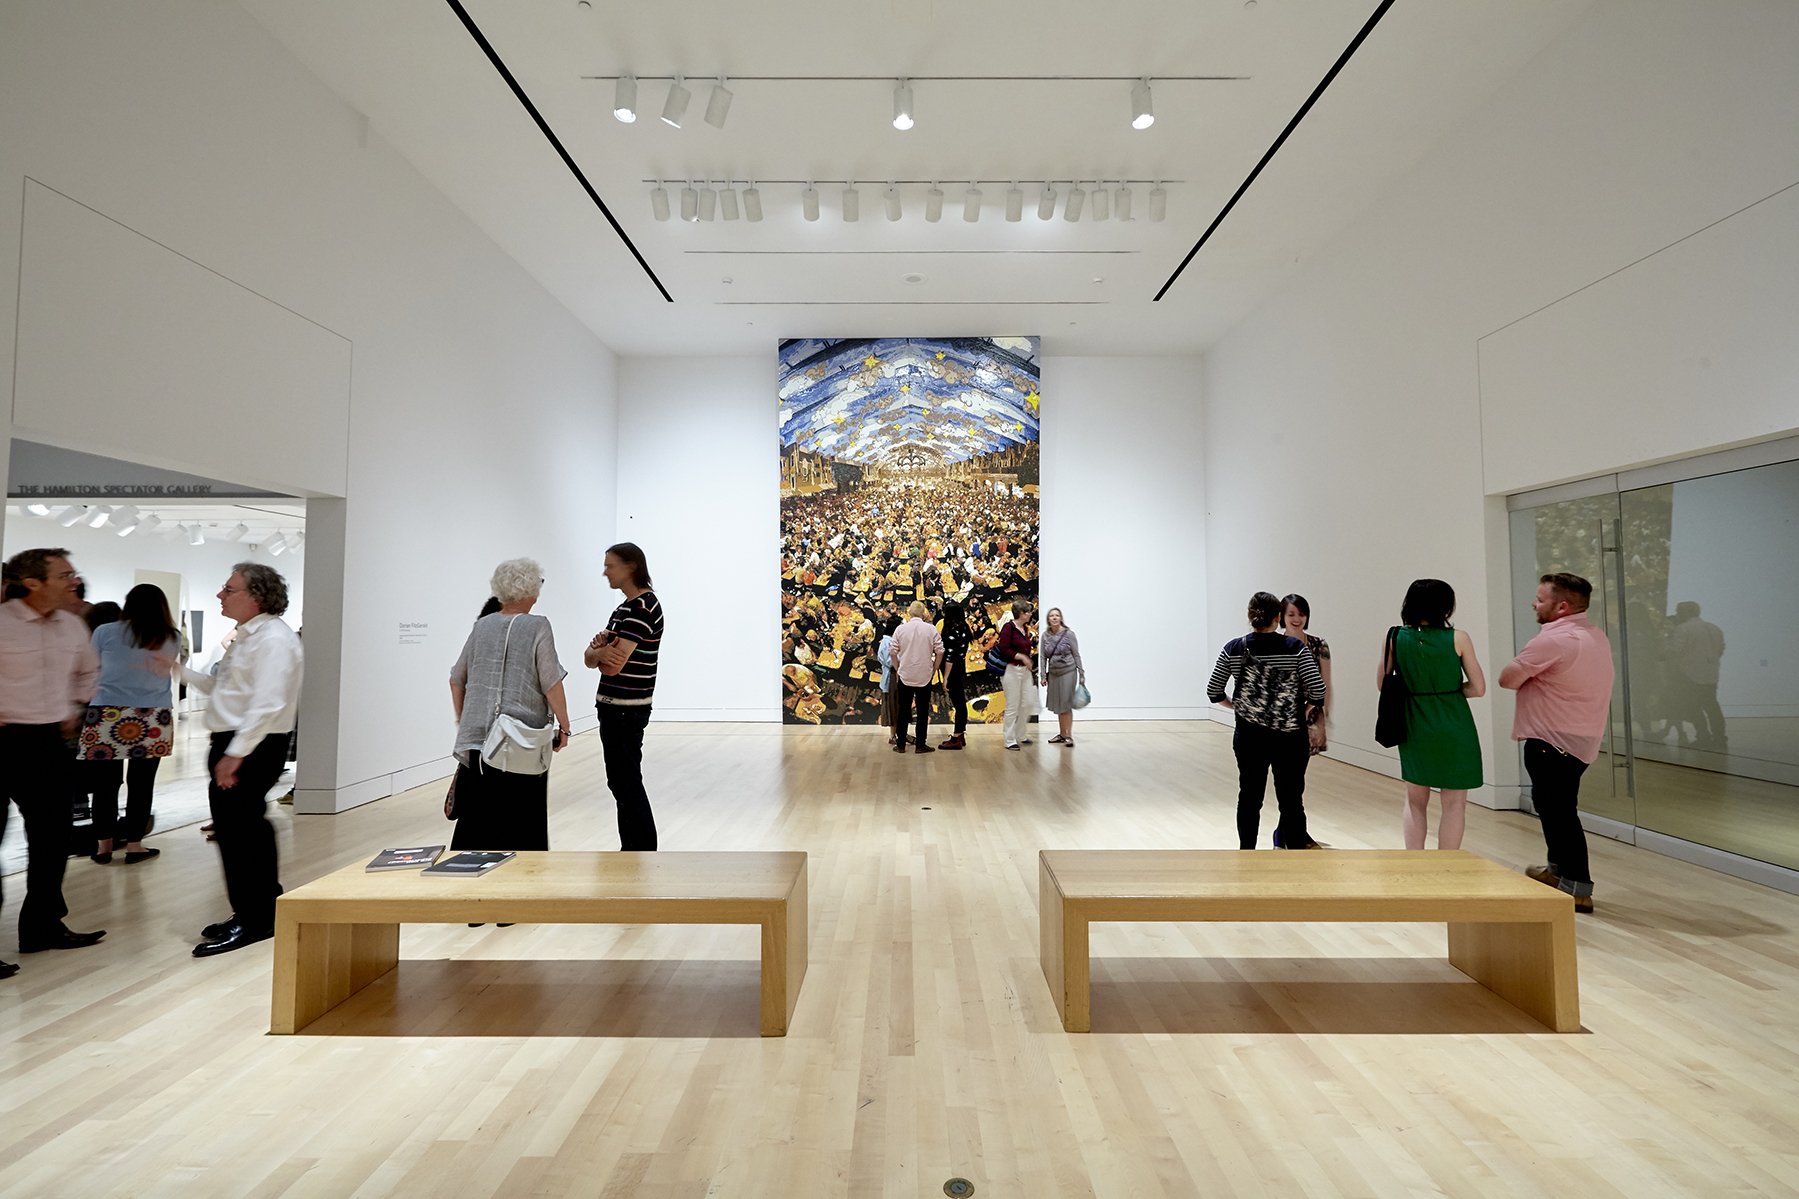 How to design an art gallery - Are You Experienced